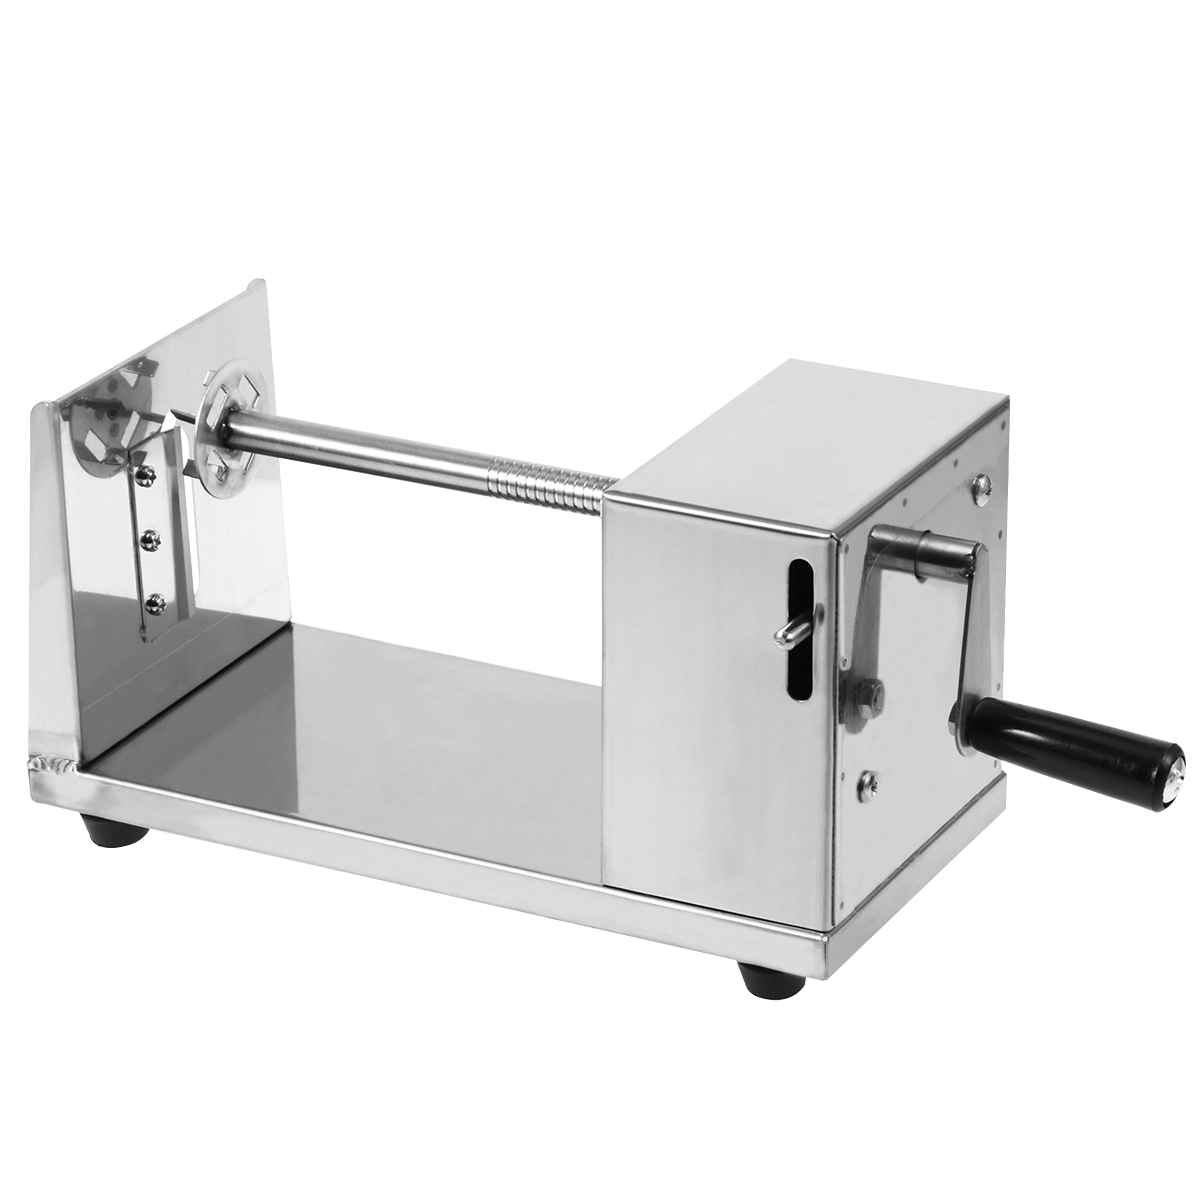 Details about  /Potato Spiral Cutter Roller French Fry Cutter